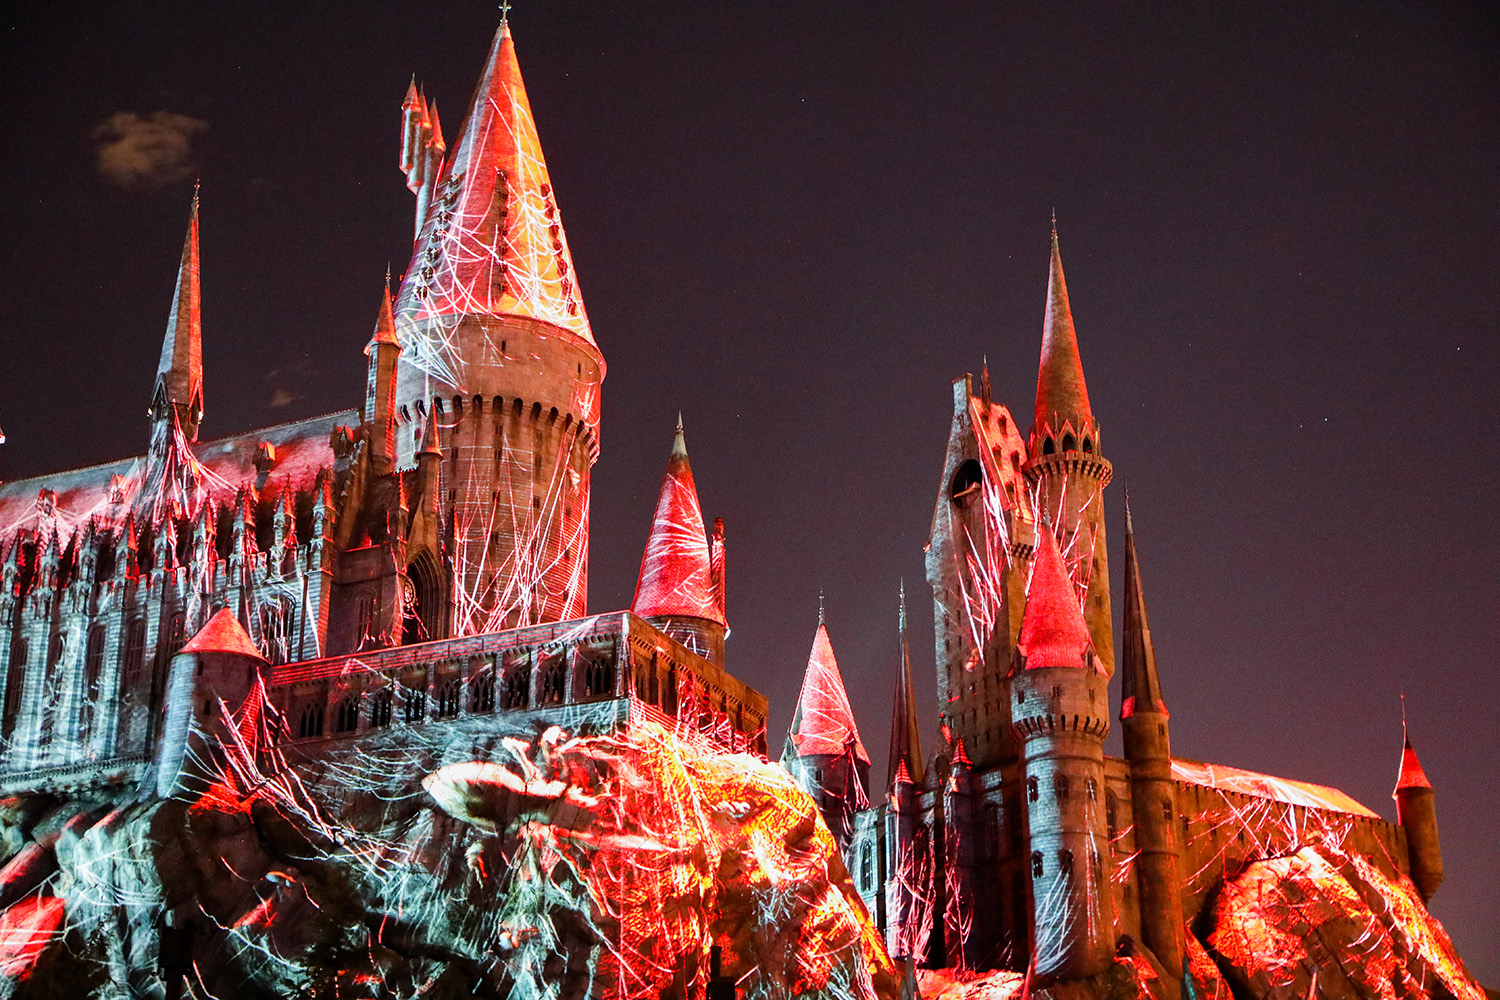 The Wizarding World of Harry Potter: the Dark Arts show is amazing!